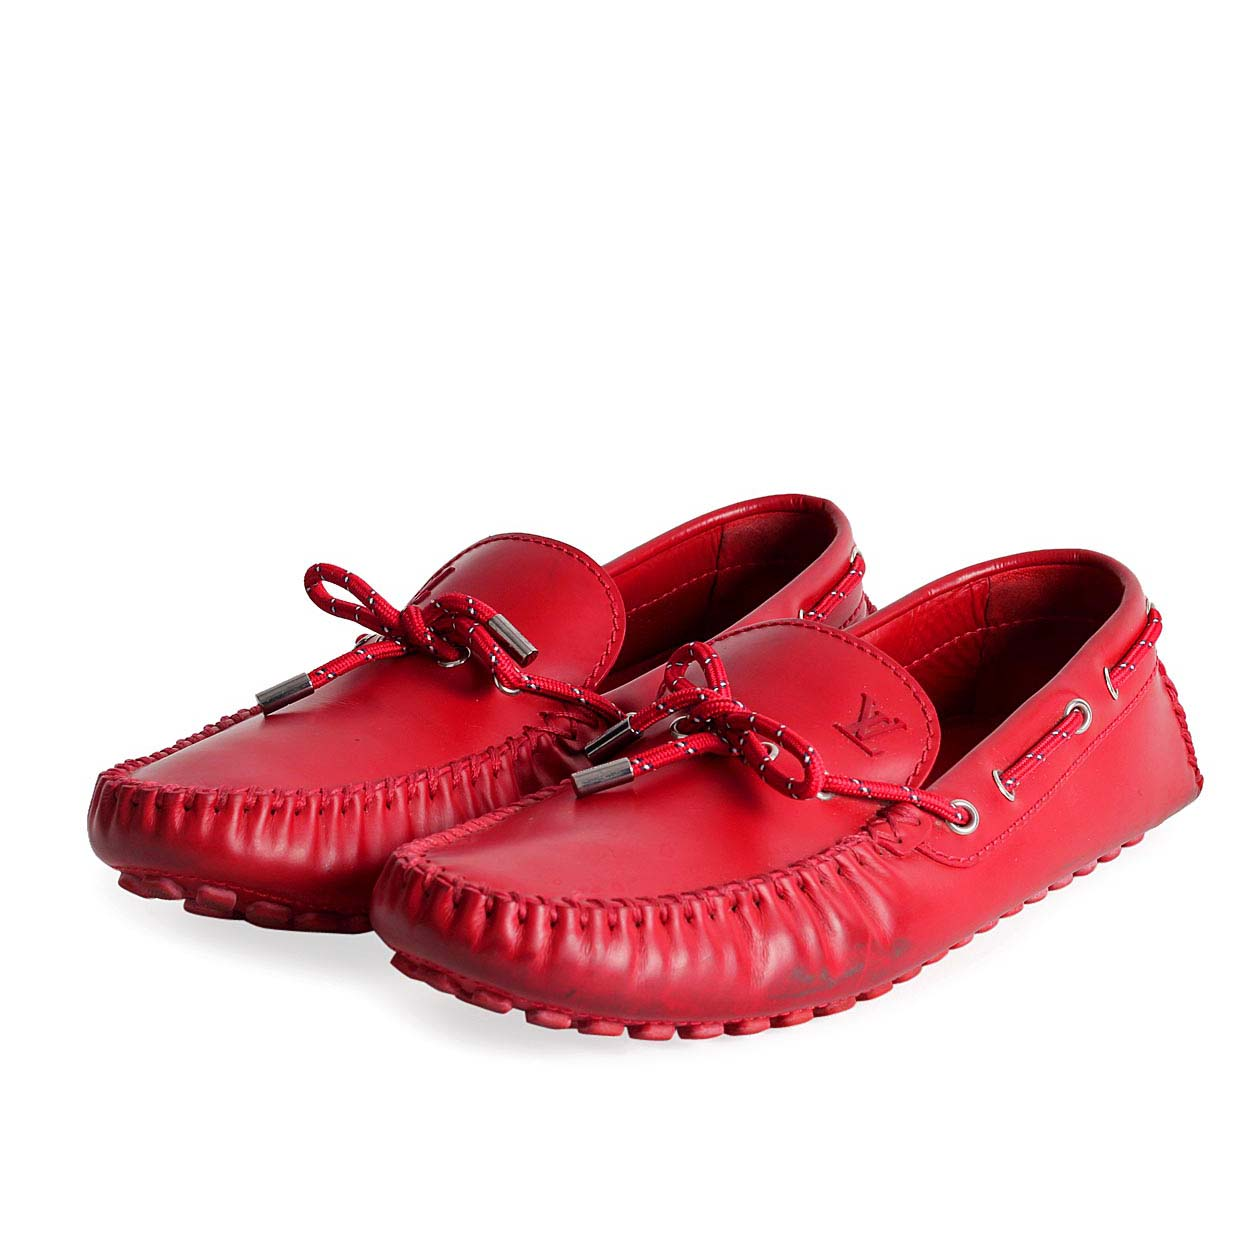 Louis Vuitton Arizona Mens Car Shoe Red S 44 9 5